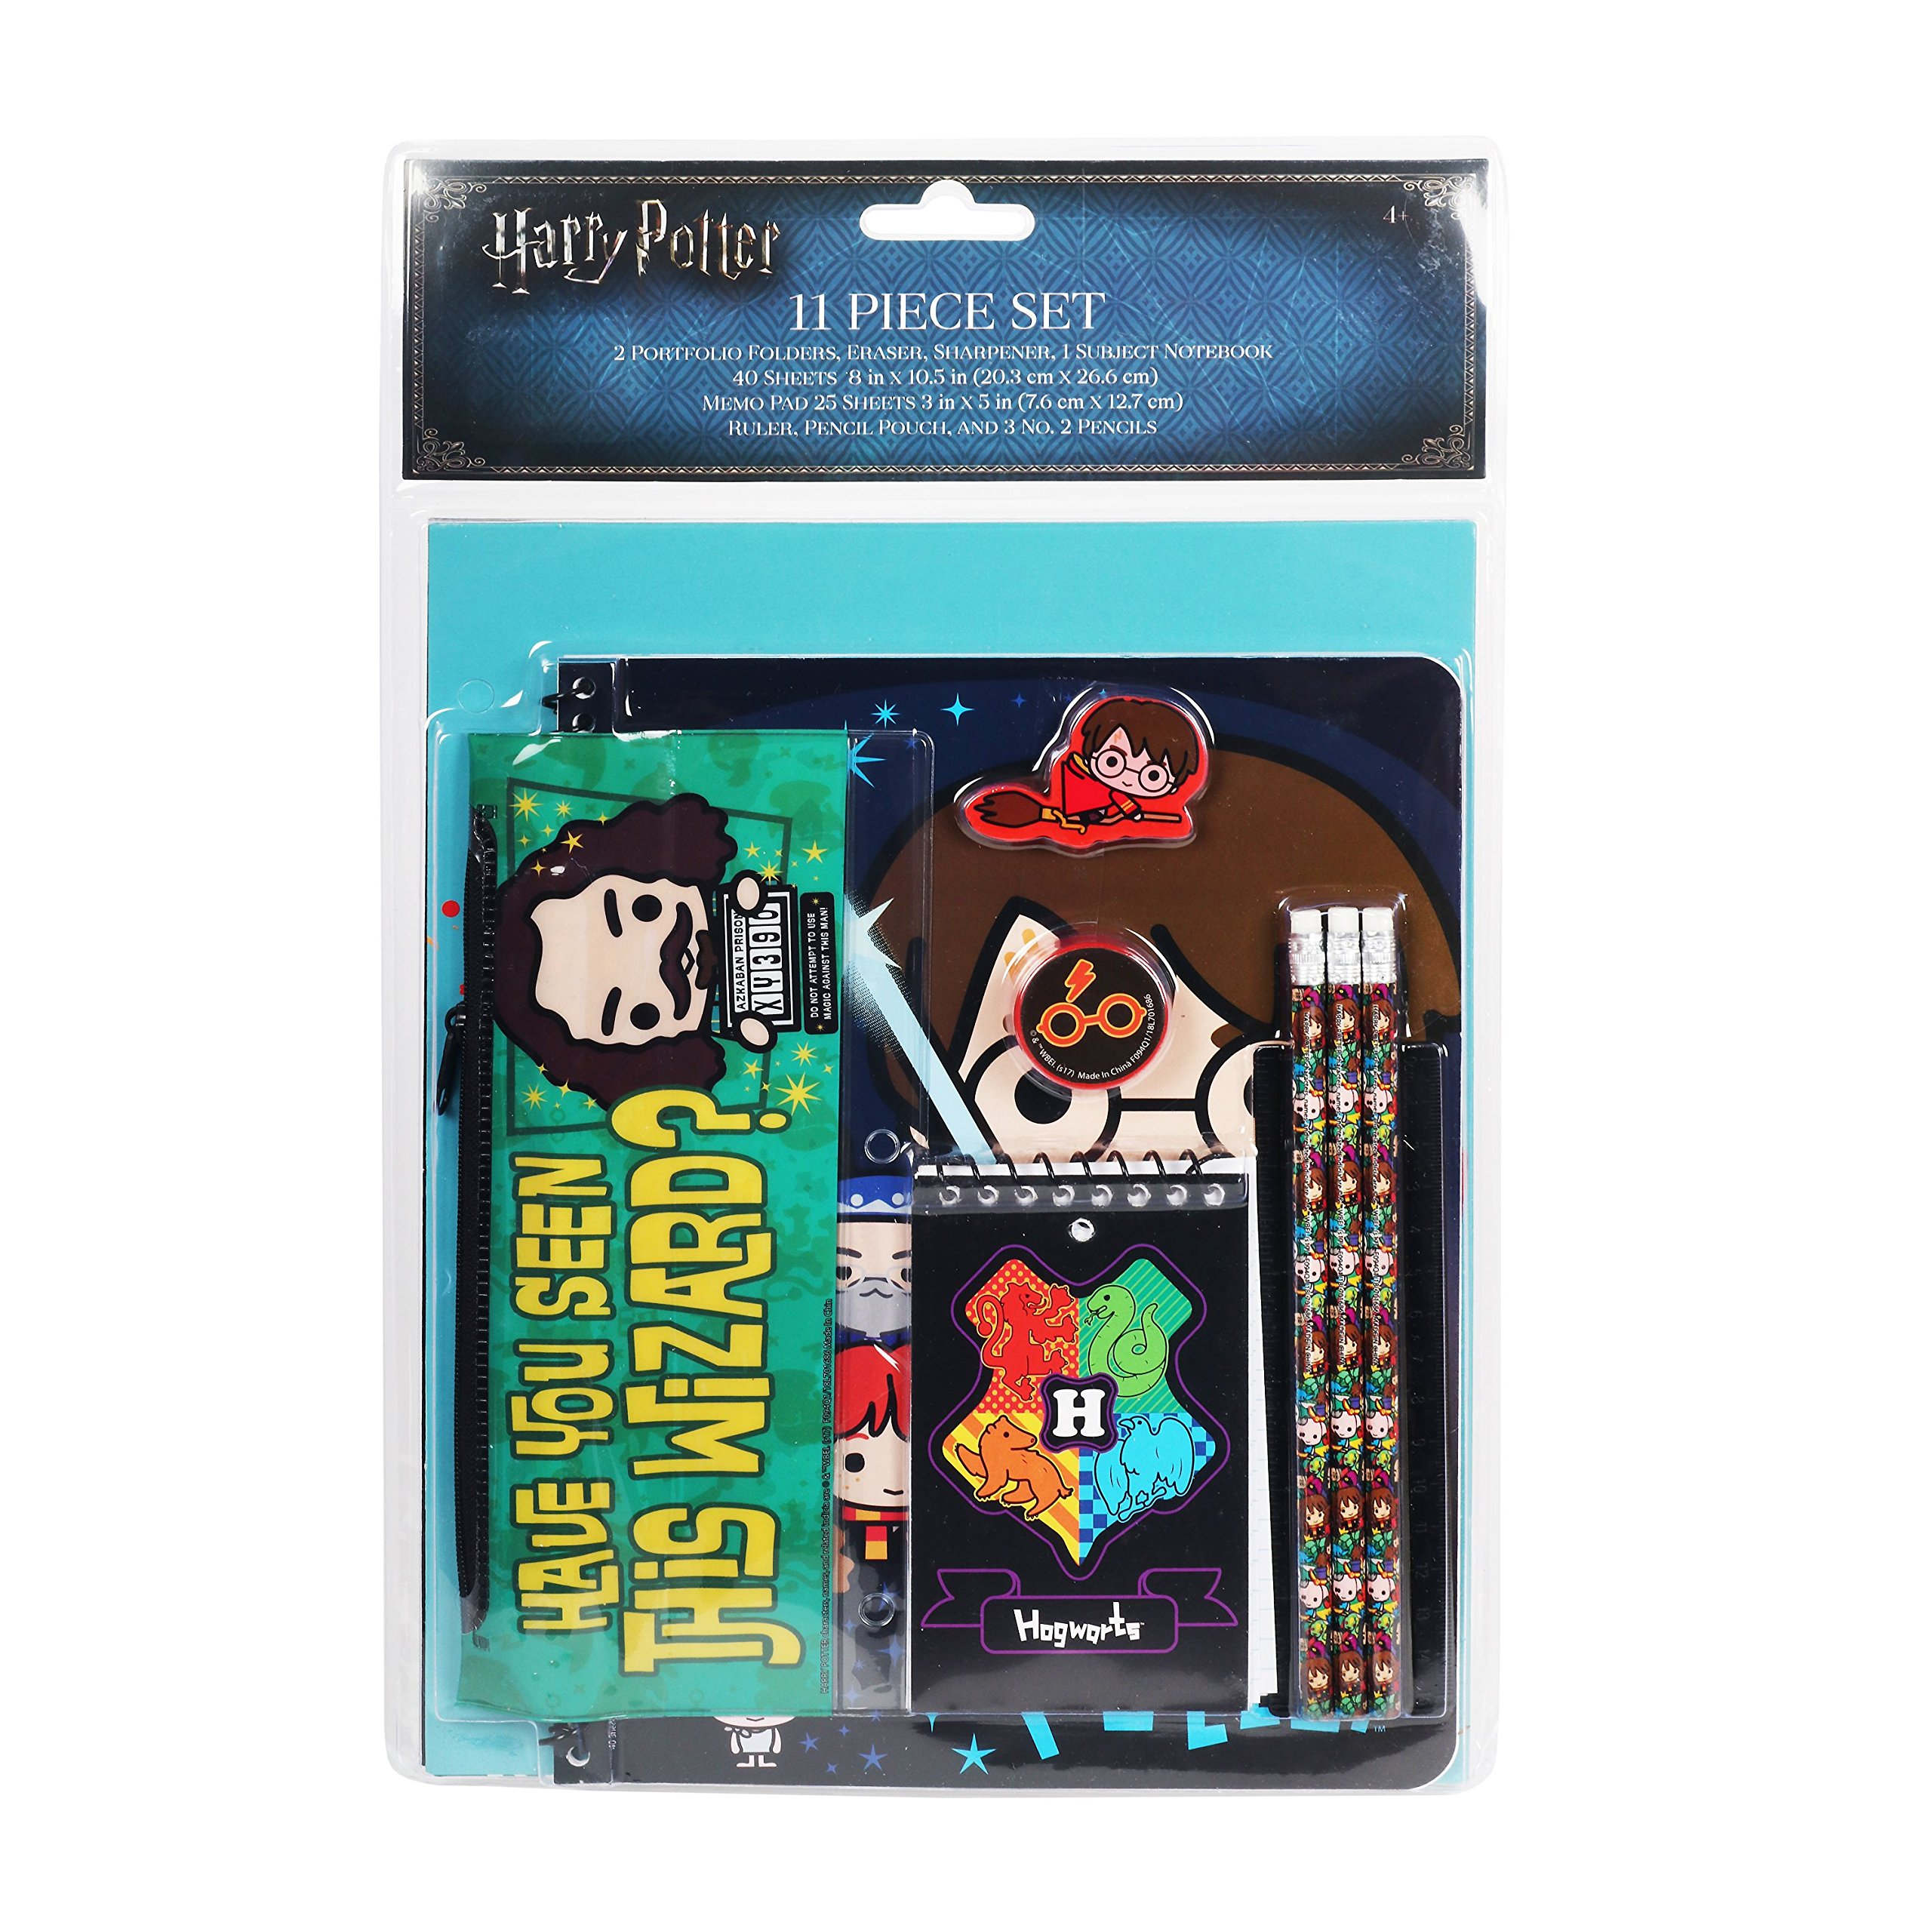 Harry Potter Chibi Stationery Set School Supplies for Kids / 11 Pieces